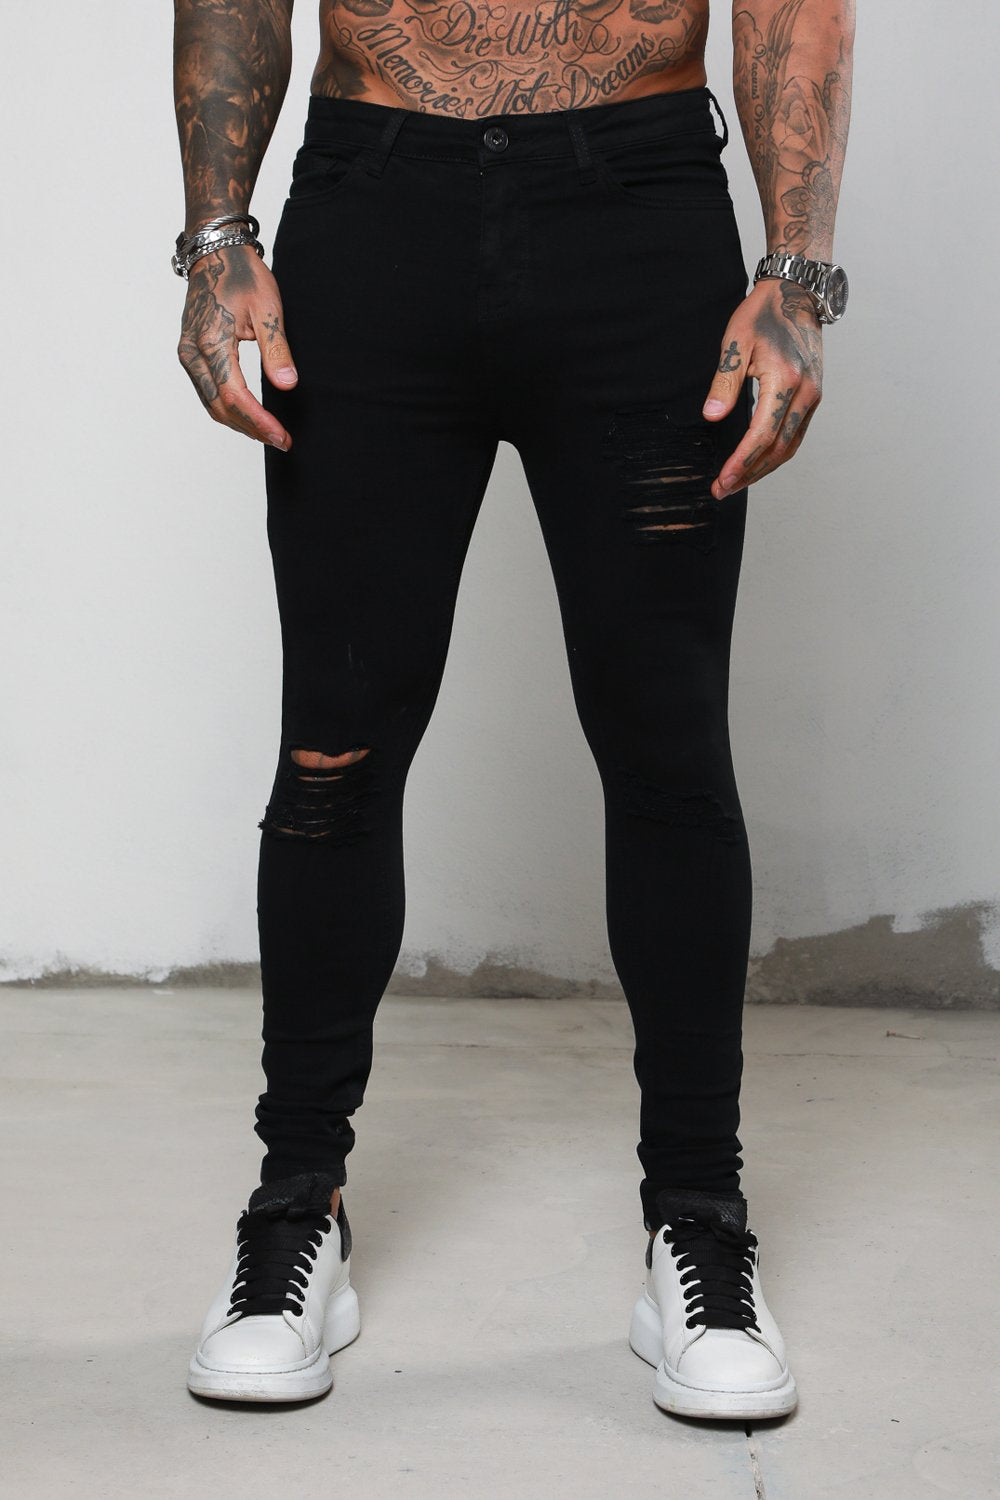 Surreal Ripped and Repaired Black Jeans